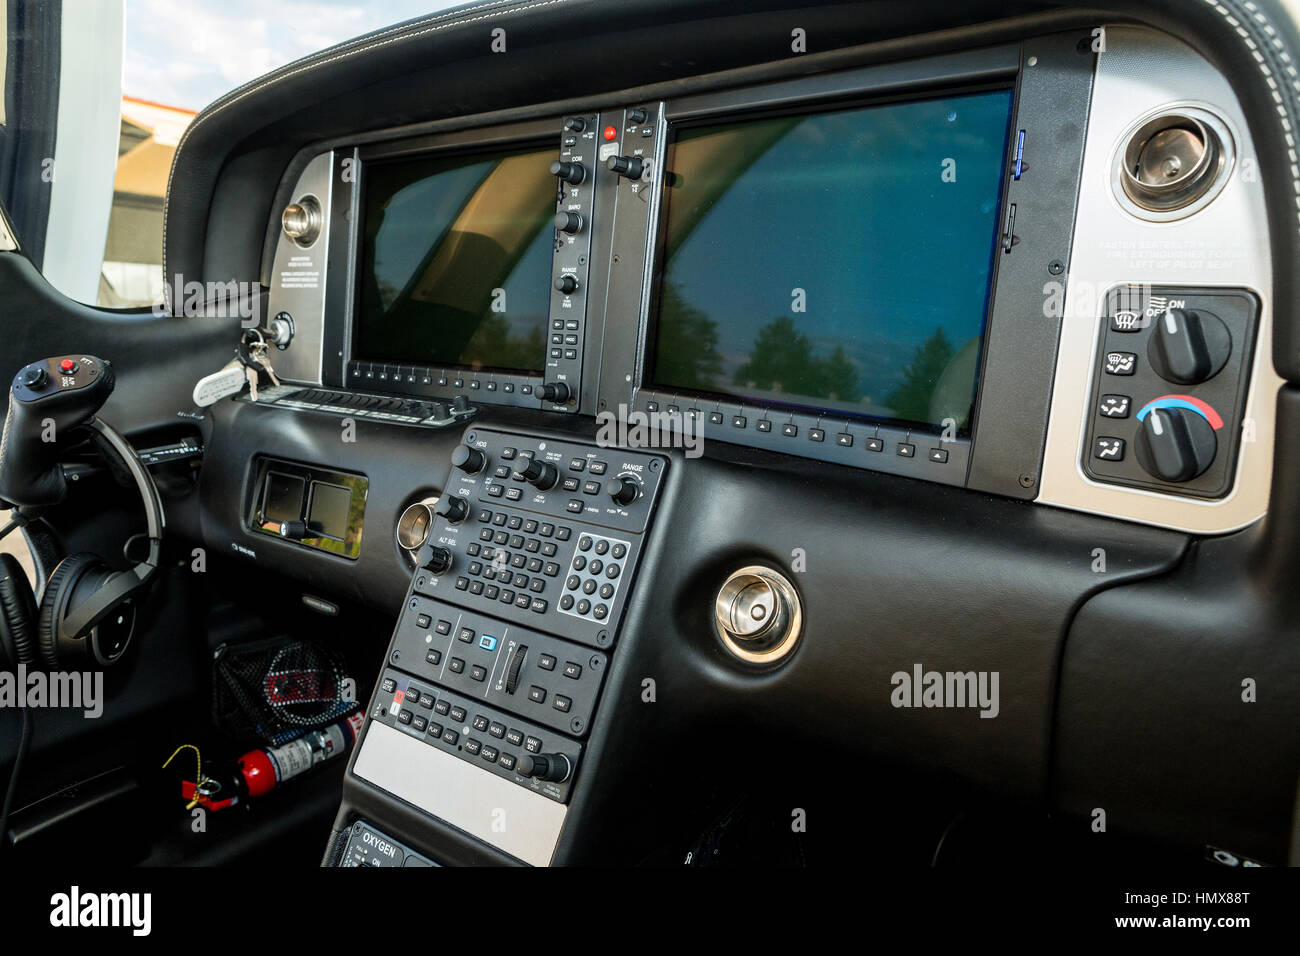 The Dashboard Sports A Small Aircraft Navigation Devices And Two